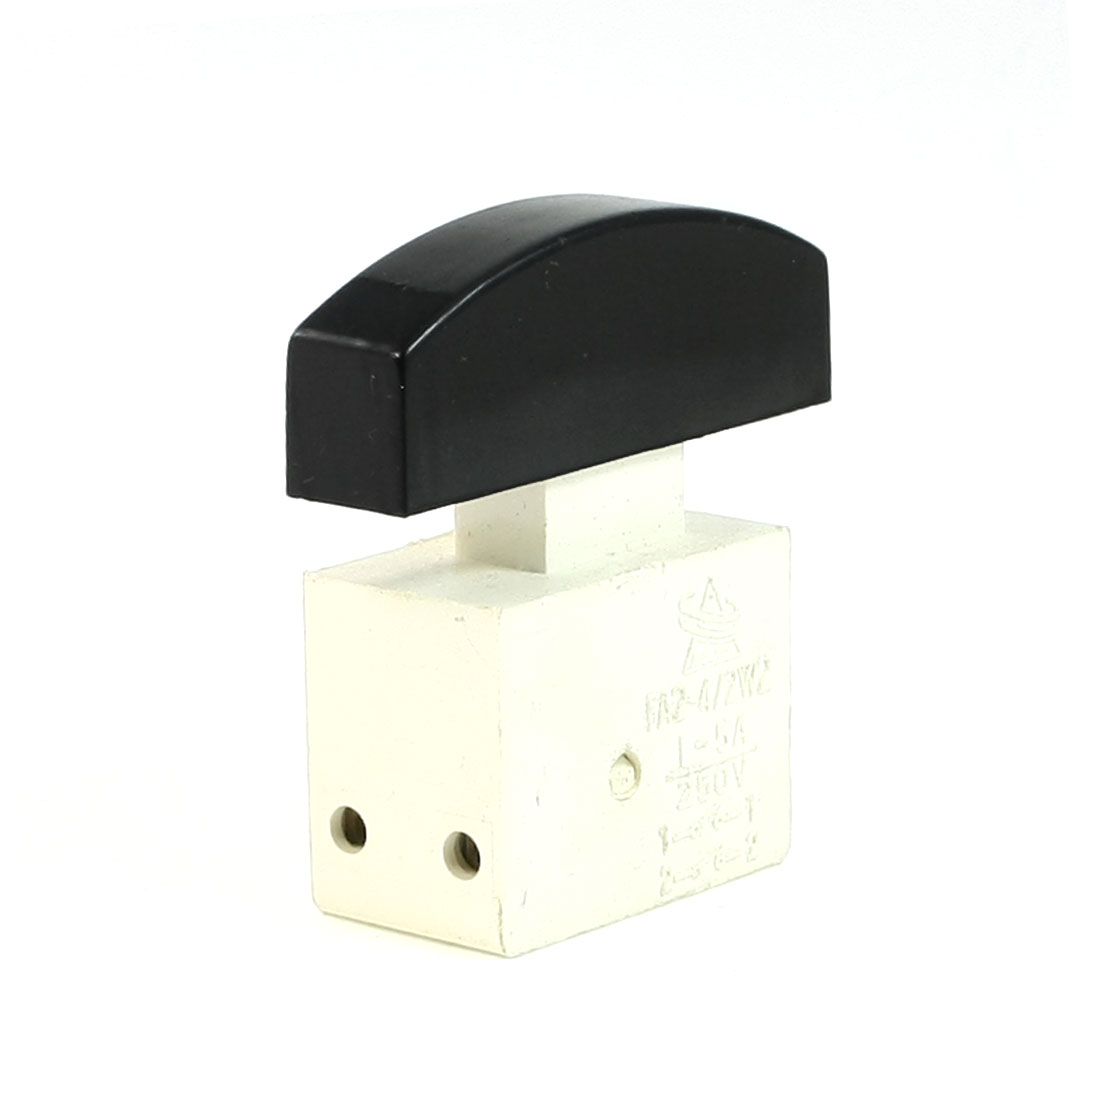 AC 250V 5A DPST Momentary Manual Trigger Switch for Dragon 19 Electric Drill